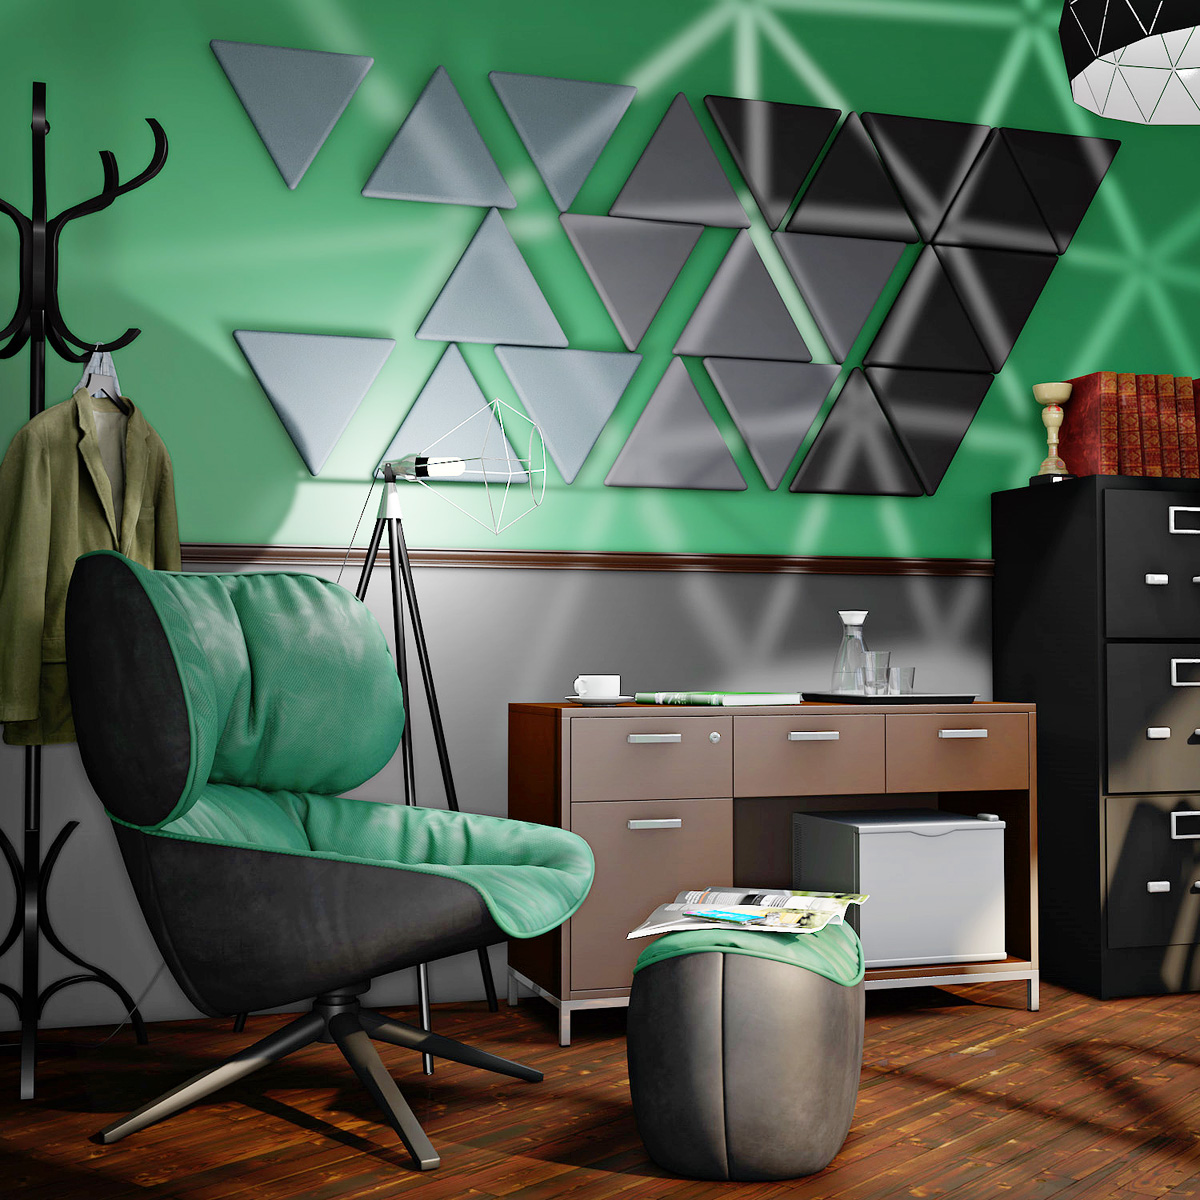 VIRAGE™ Triangular Acoustic Wall Soundproofing Panels